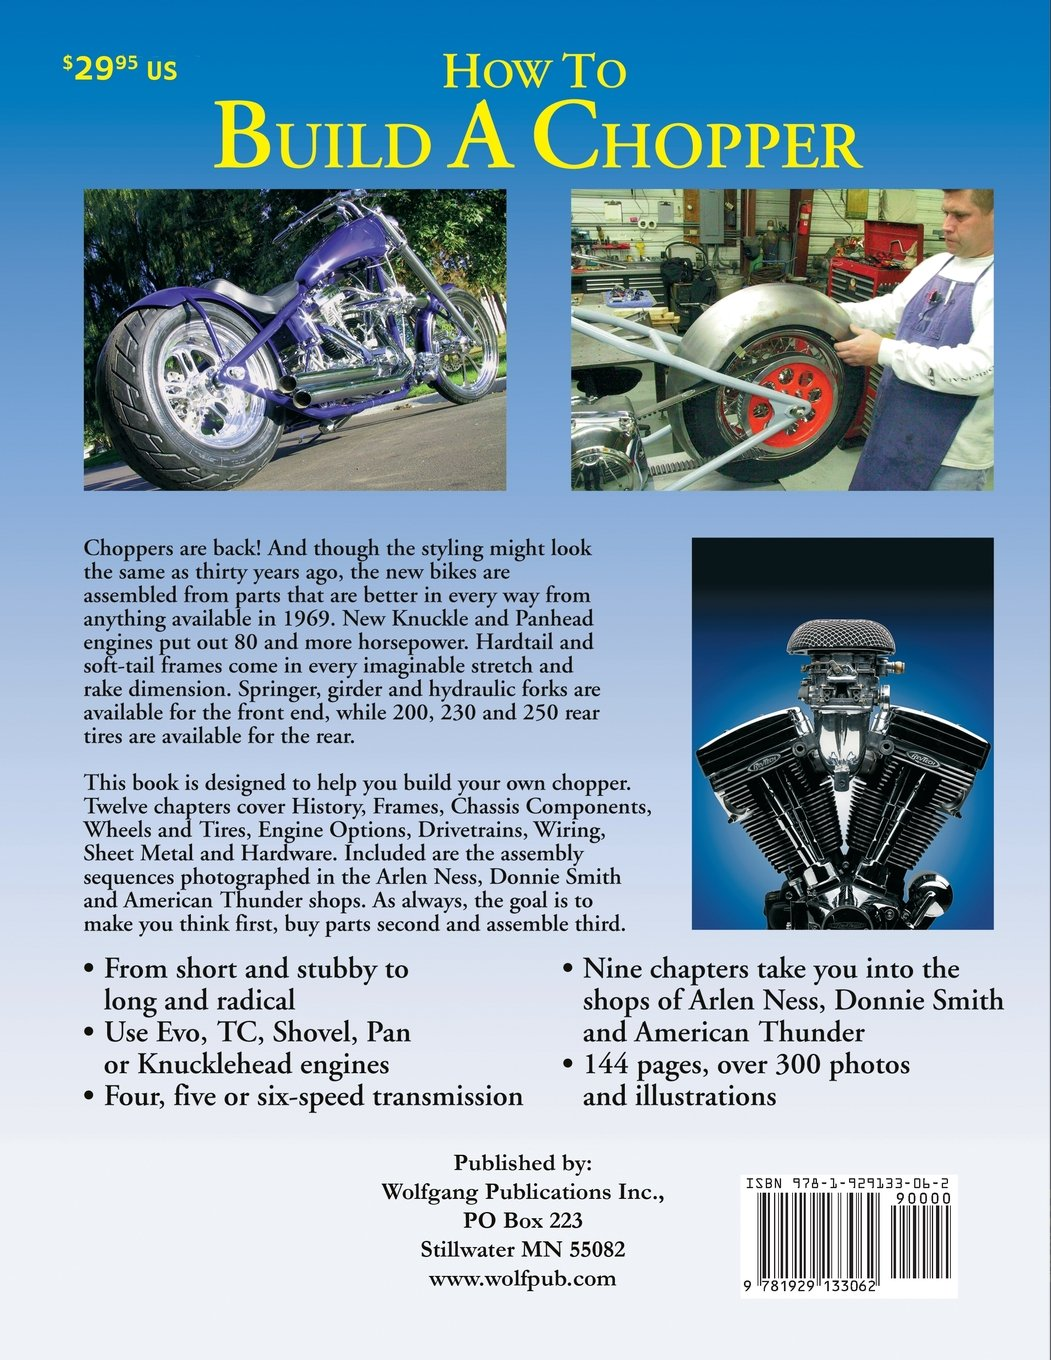 How to Build a Chopper: Timothy Remus: 0652576330656: Amazon.com: Books